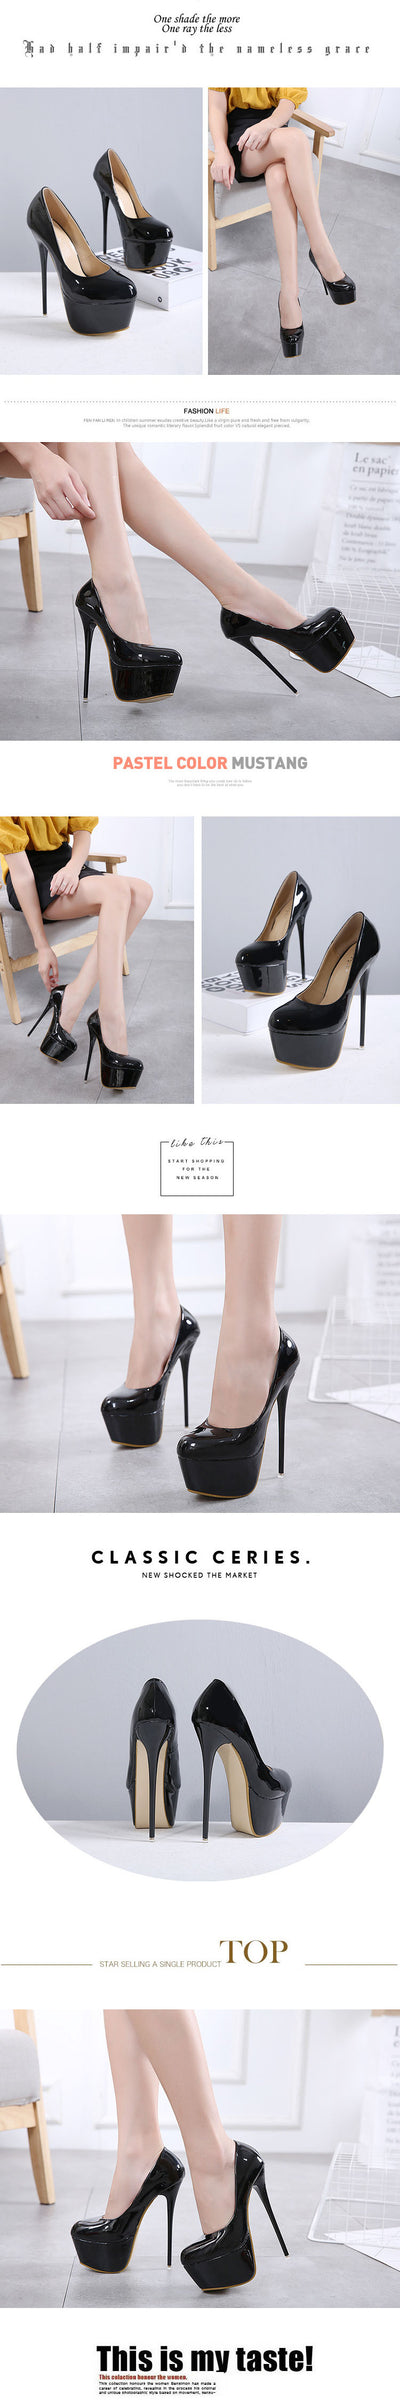 Women's Pumps  Block Heel Nightclub  Pumps High Heels Black